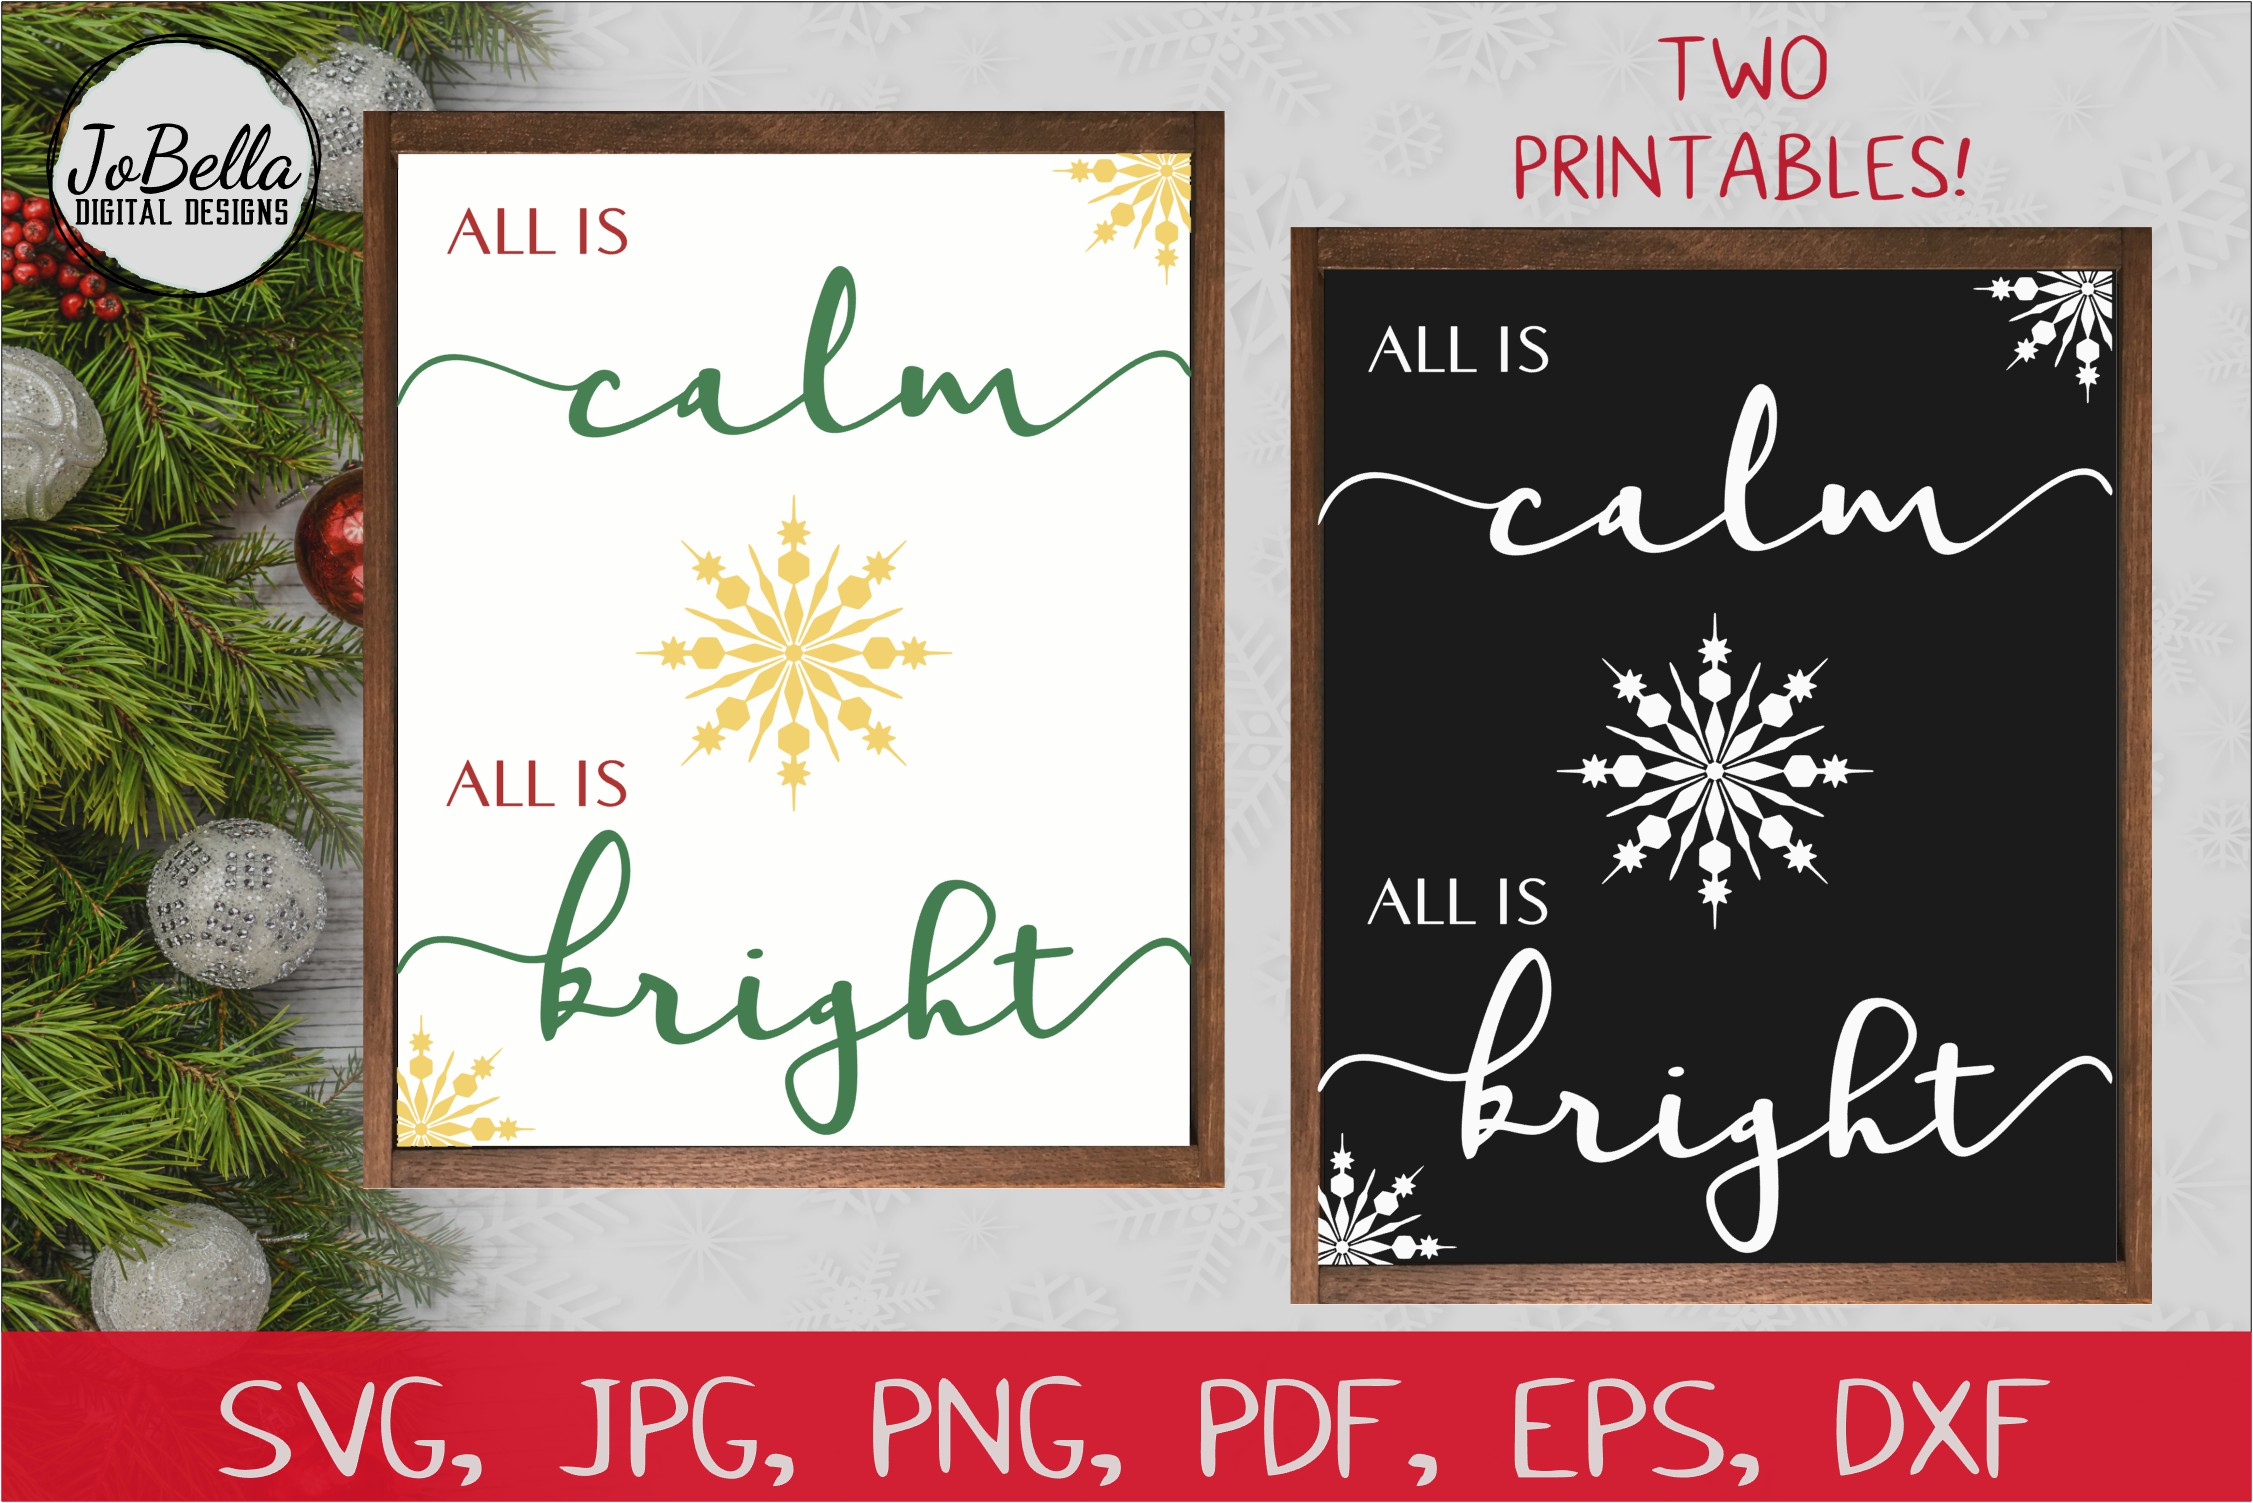 Download Free Silent Night Christmas Graphic By Jobella Digital Designs for Cricut Explore, Silhouette and other cutting machines.